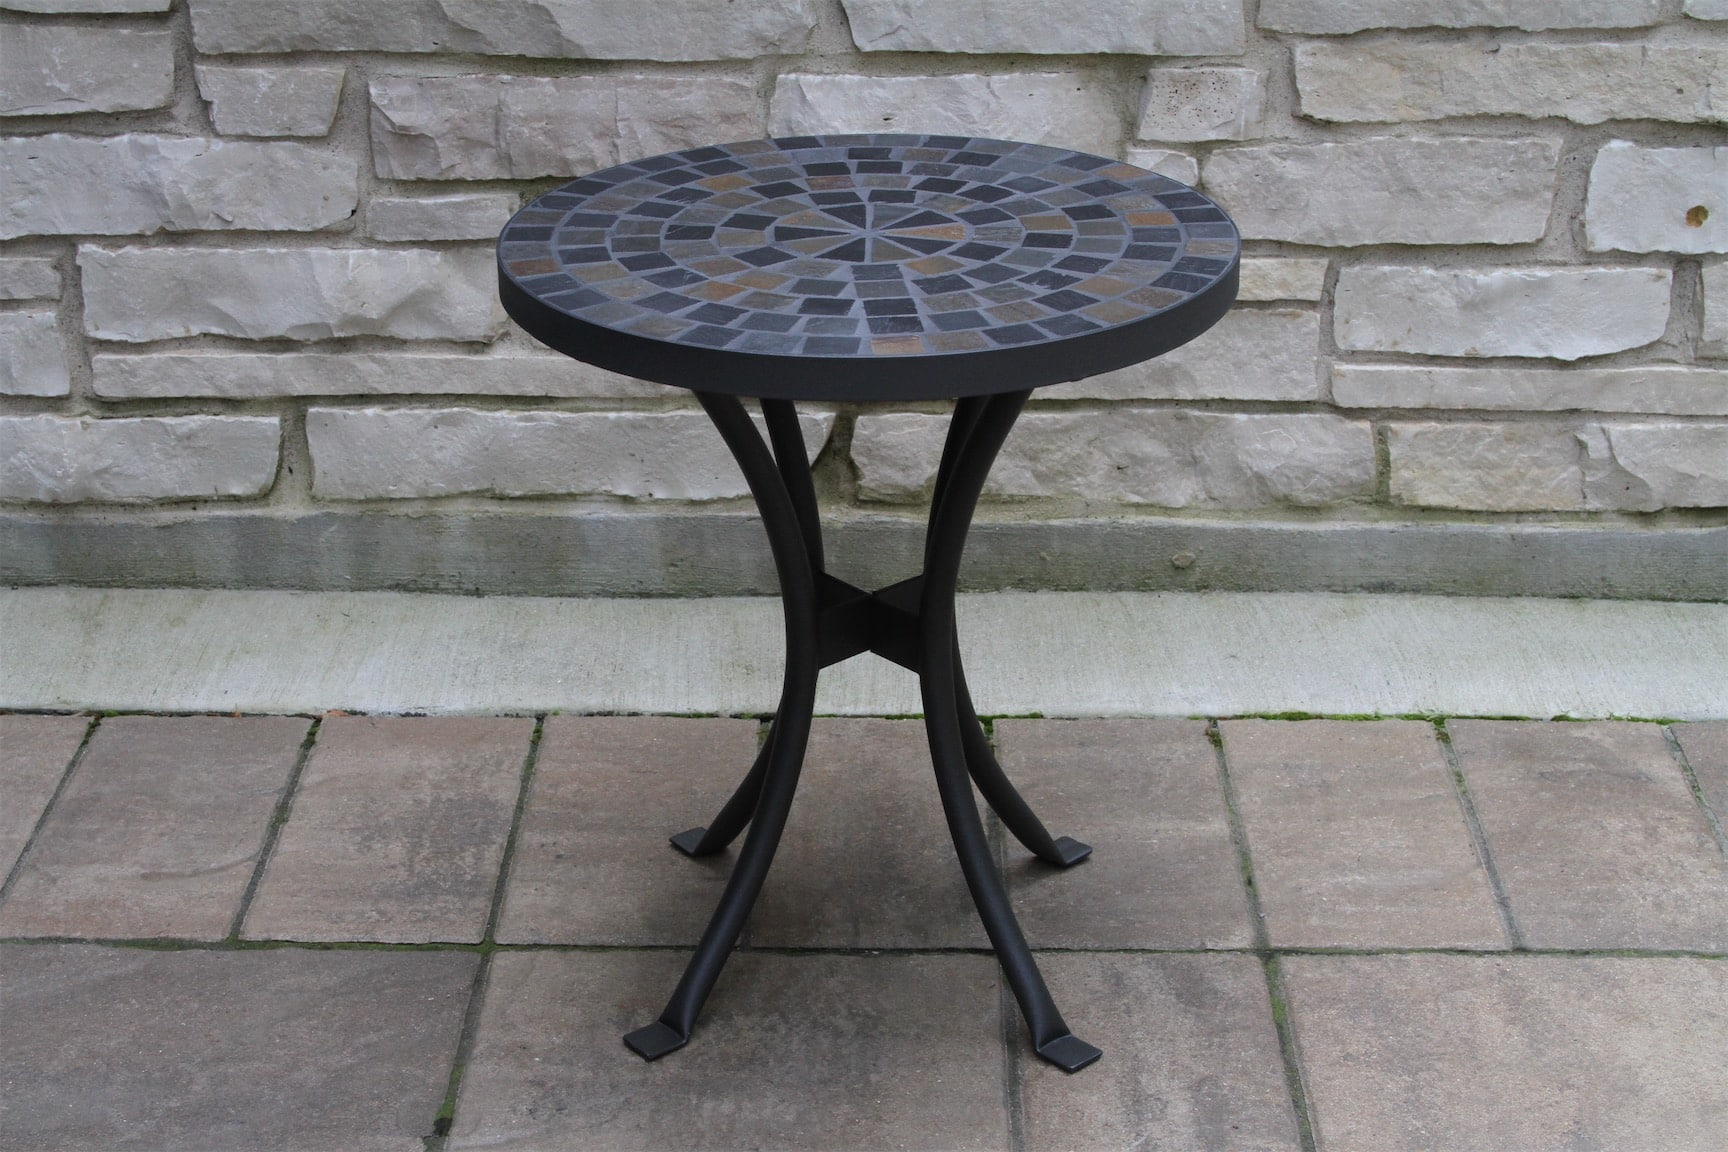 18 slate mosaic accent table for decks